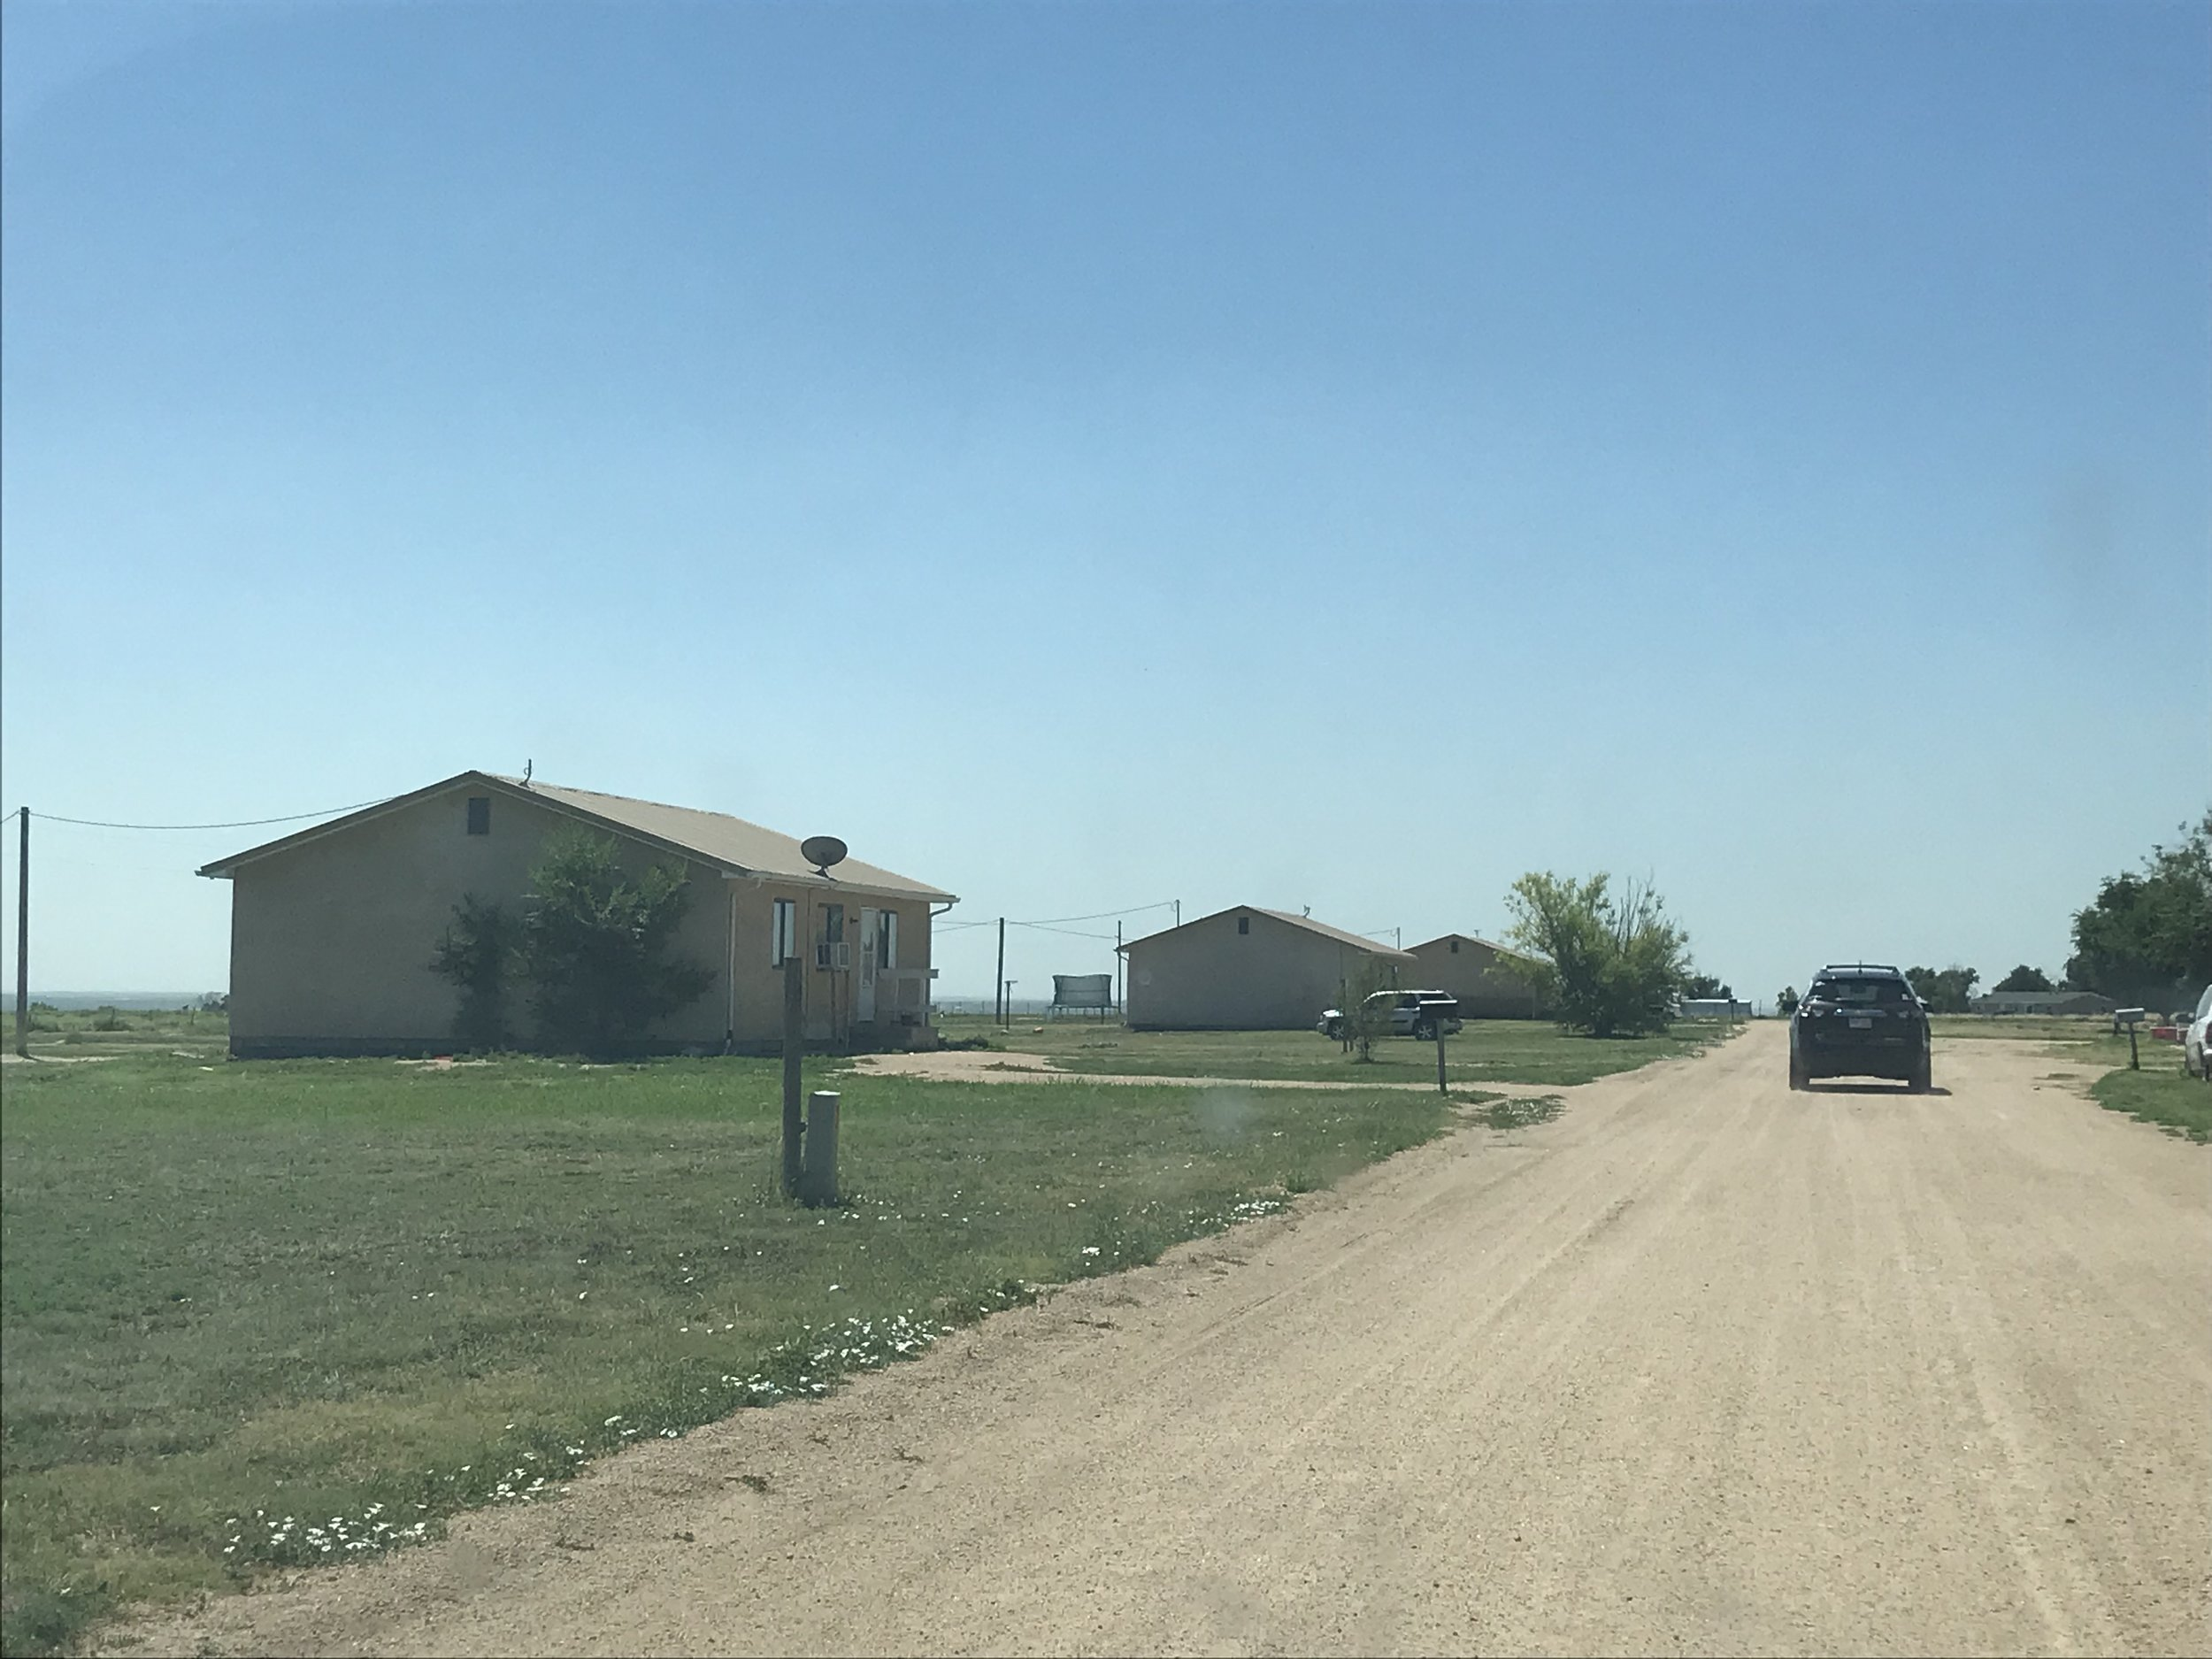 Farmworker housing, run by a housing authority in McClave, in rough shape.